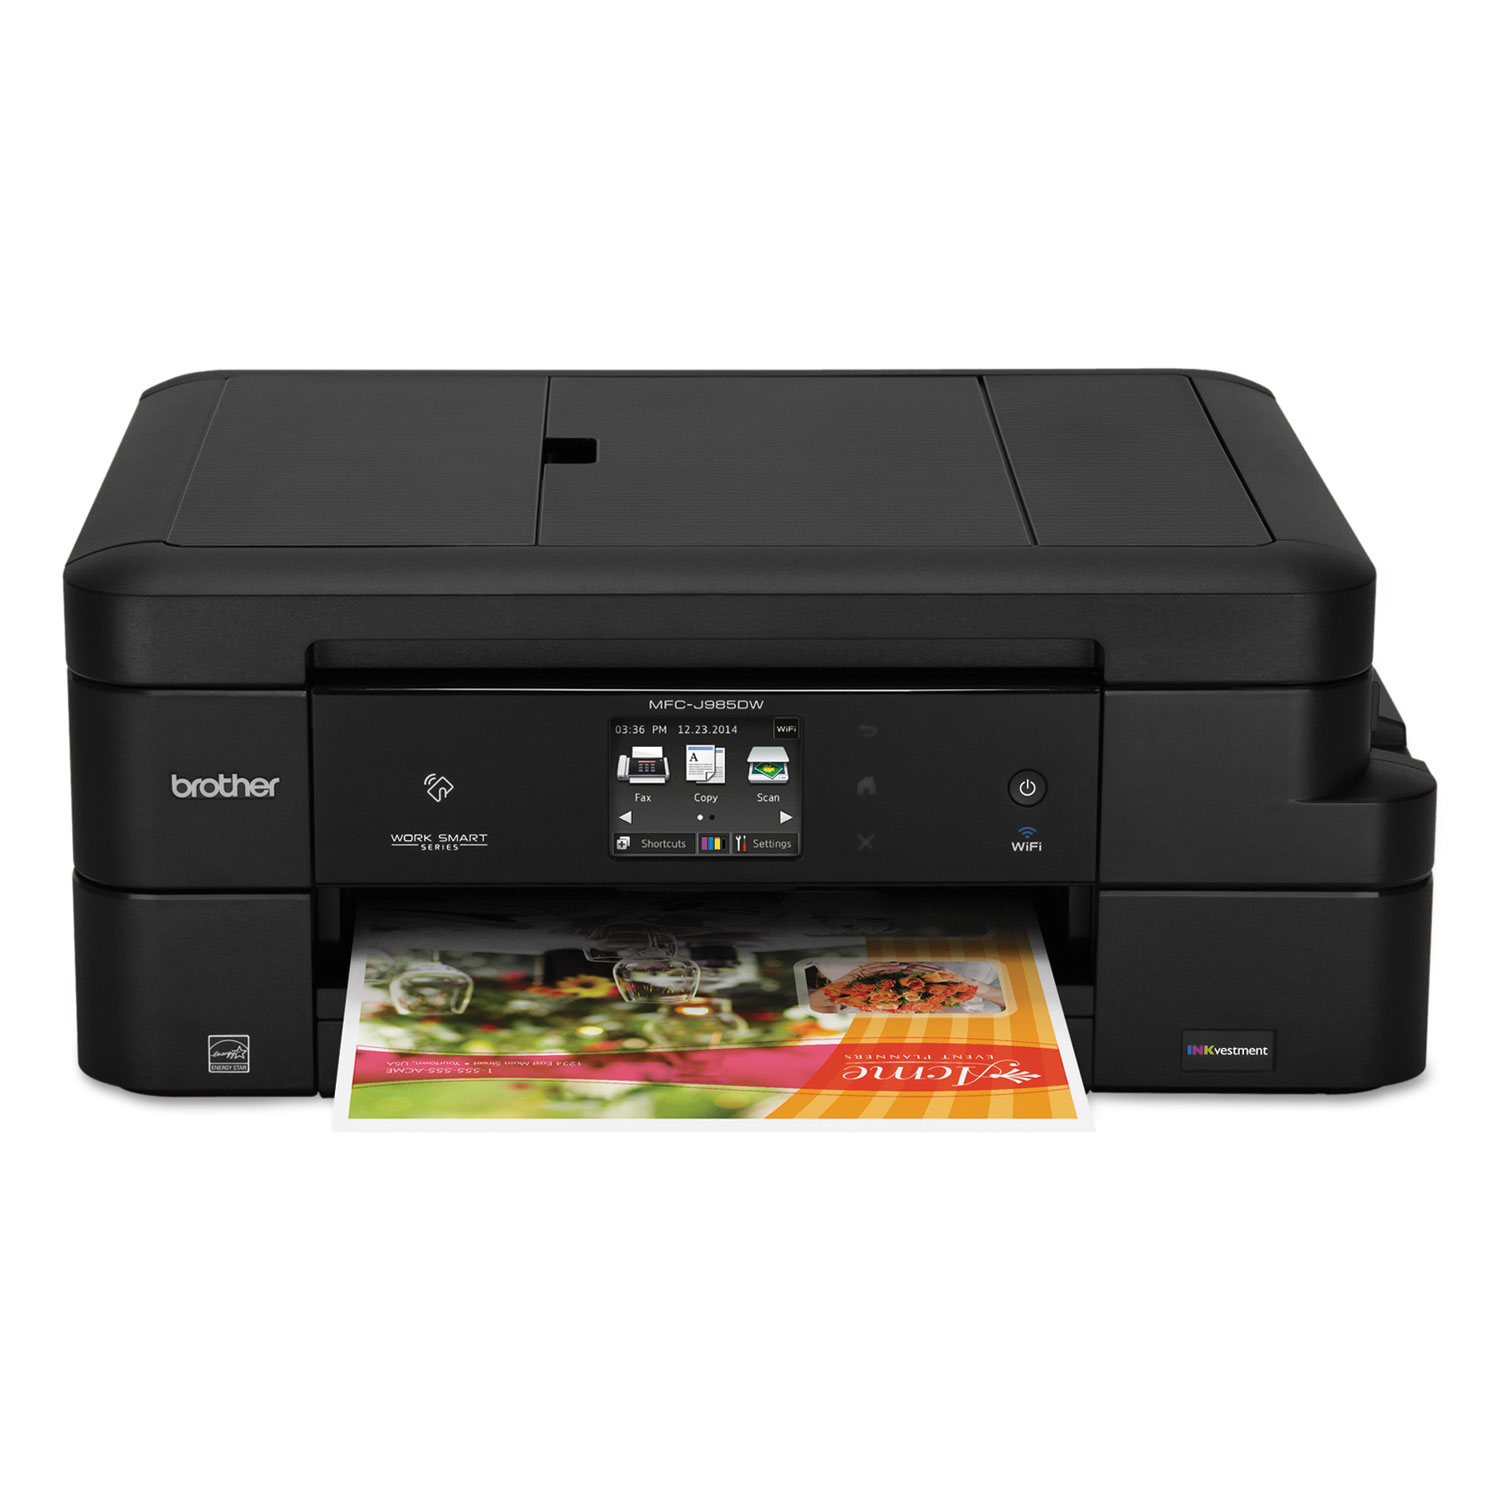 Work Smart MFC-J985DW All-in-One Copy/Fax/Print/Scan With INKvestment Cartridges